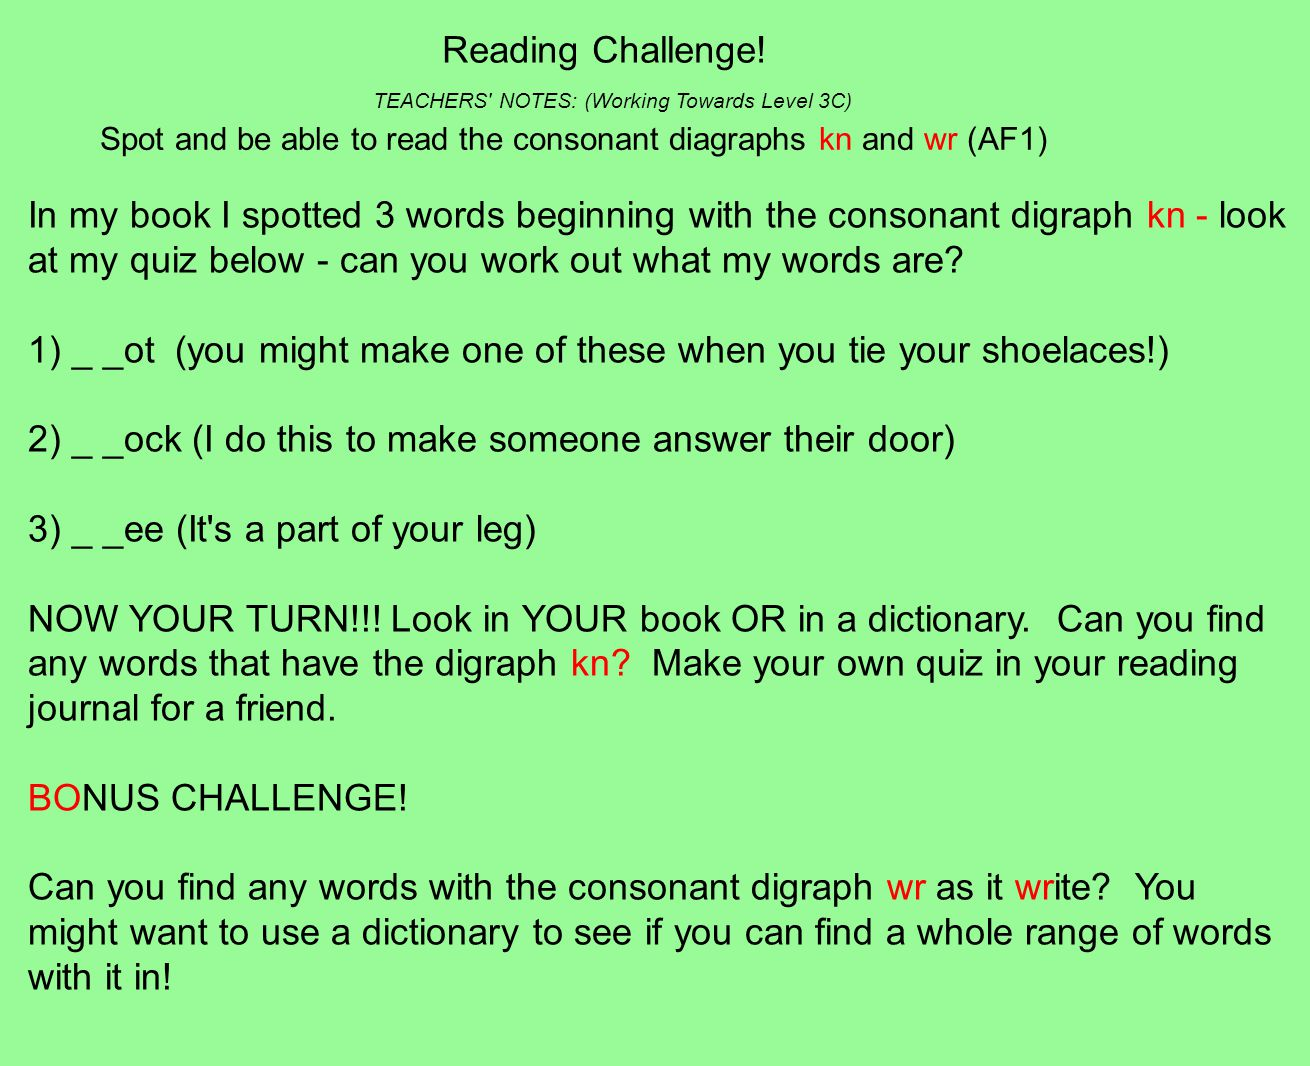 Spot and be able to read the consonant diagraphs kn and wr (AF1) Reading Challenge.